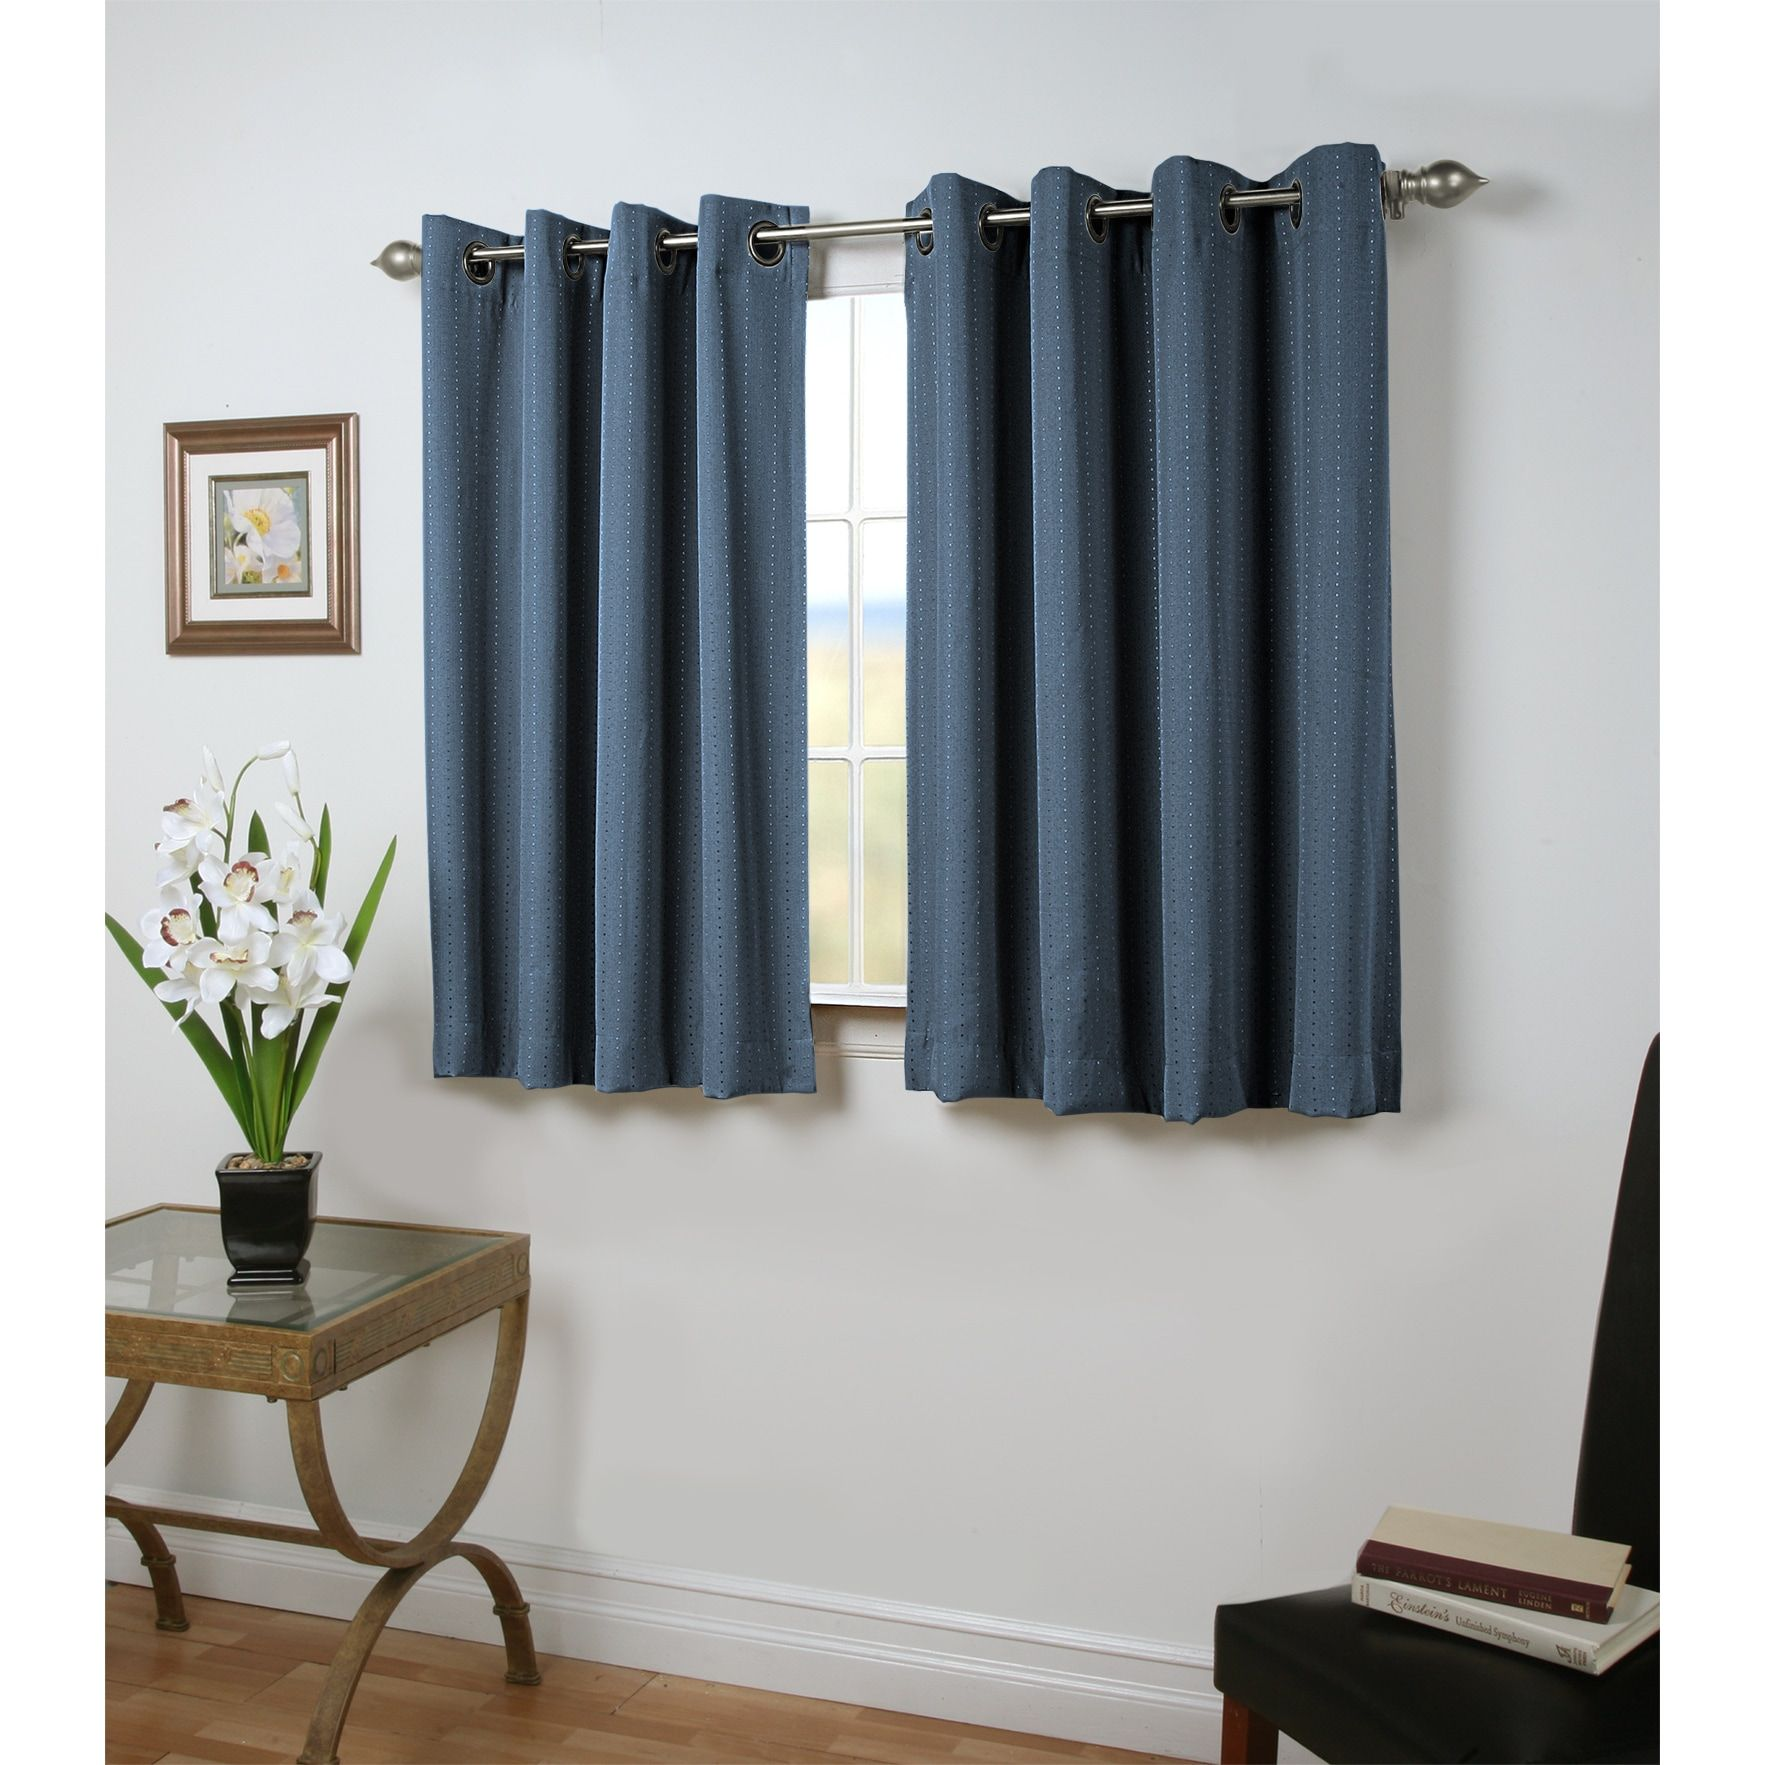 Bedroom Curtains Room Darkening Grand Pointe 45 Inch Length Short Grommet Blackout Panel